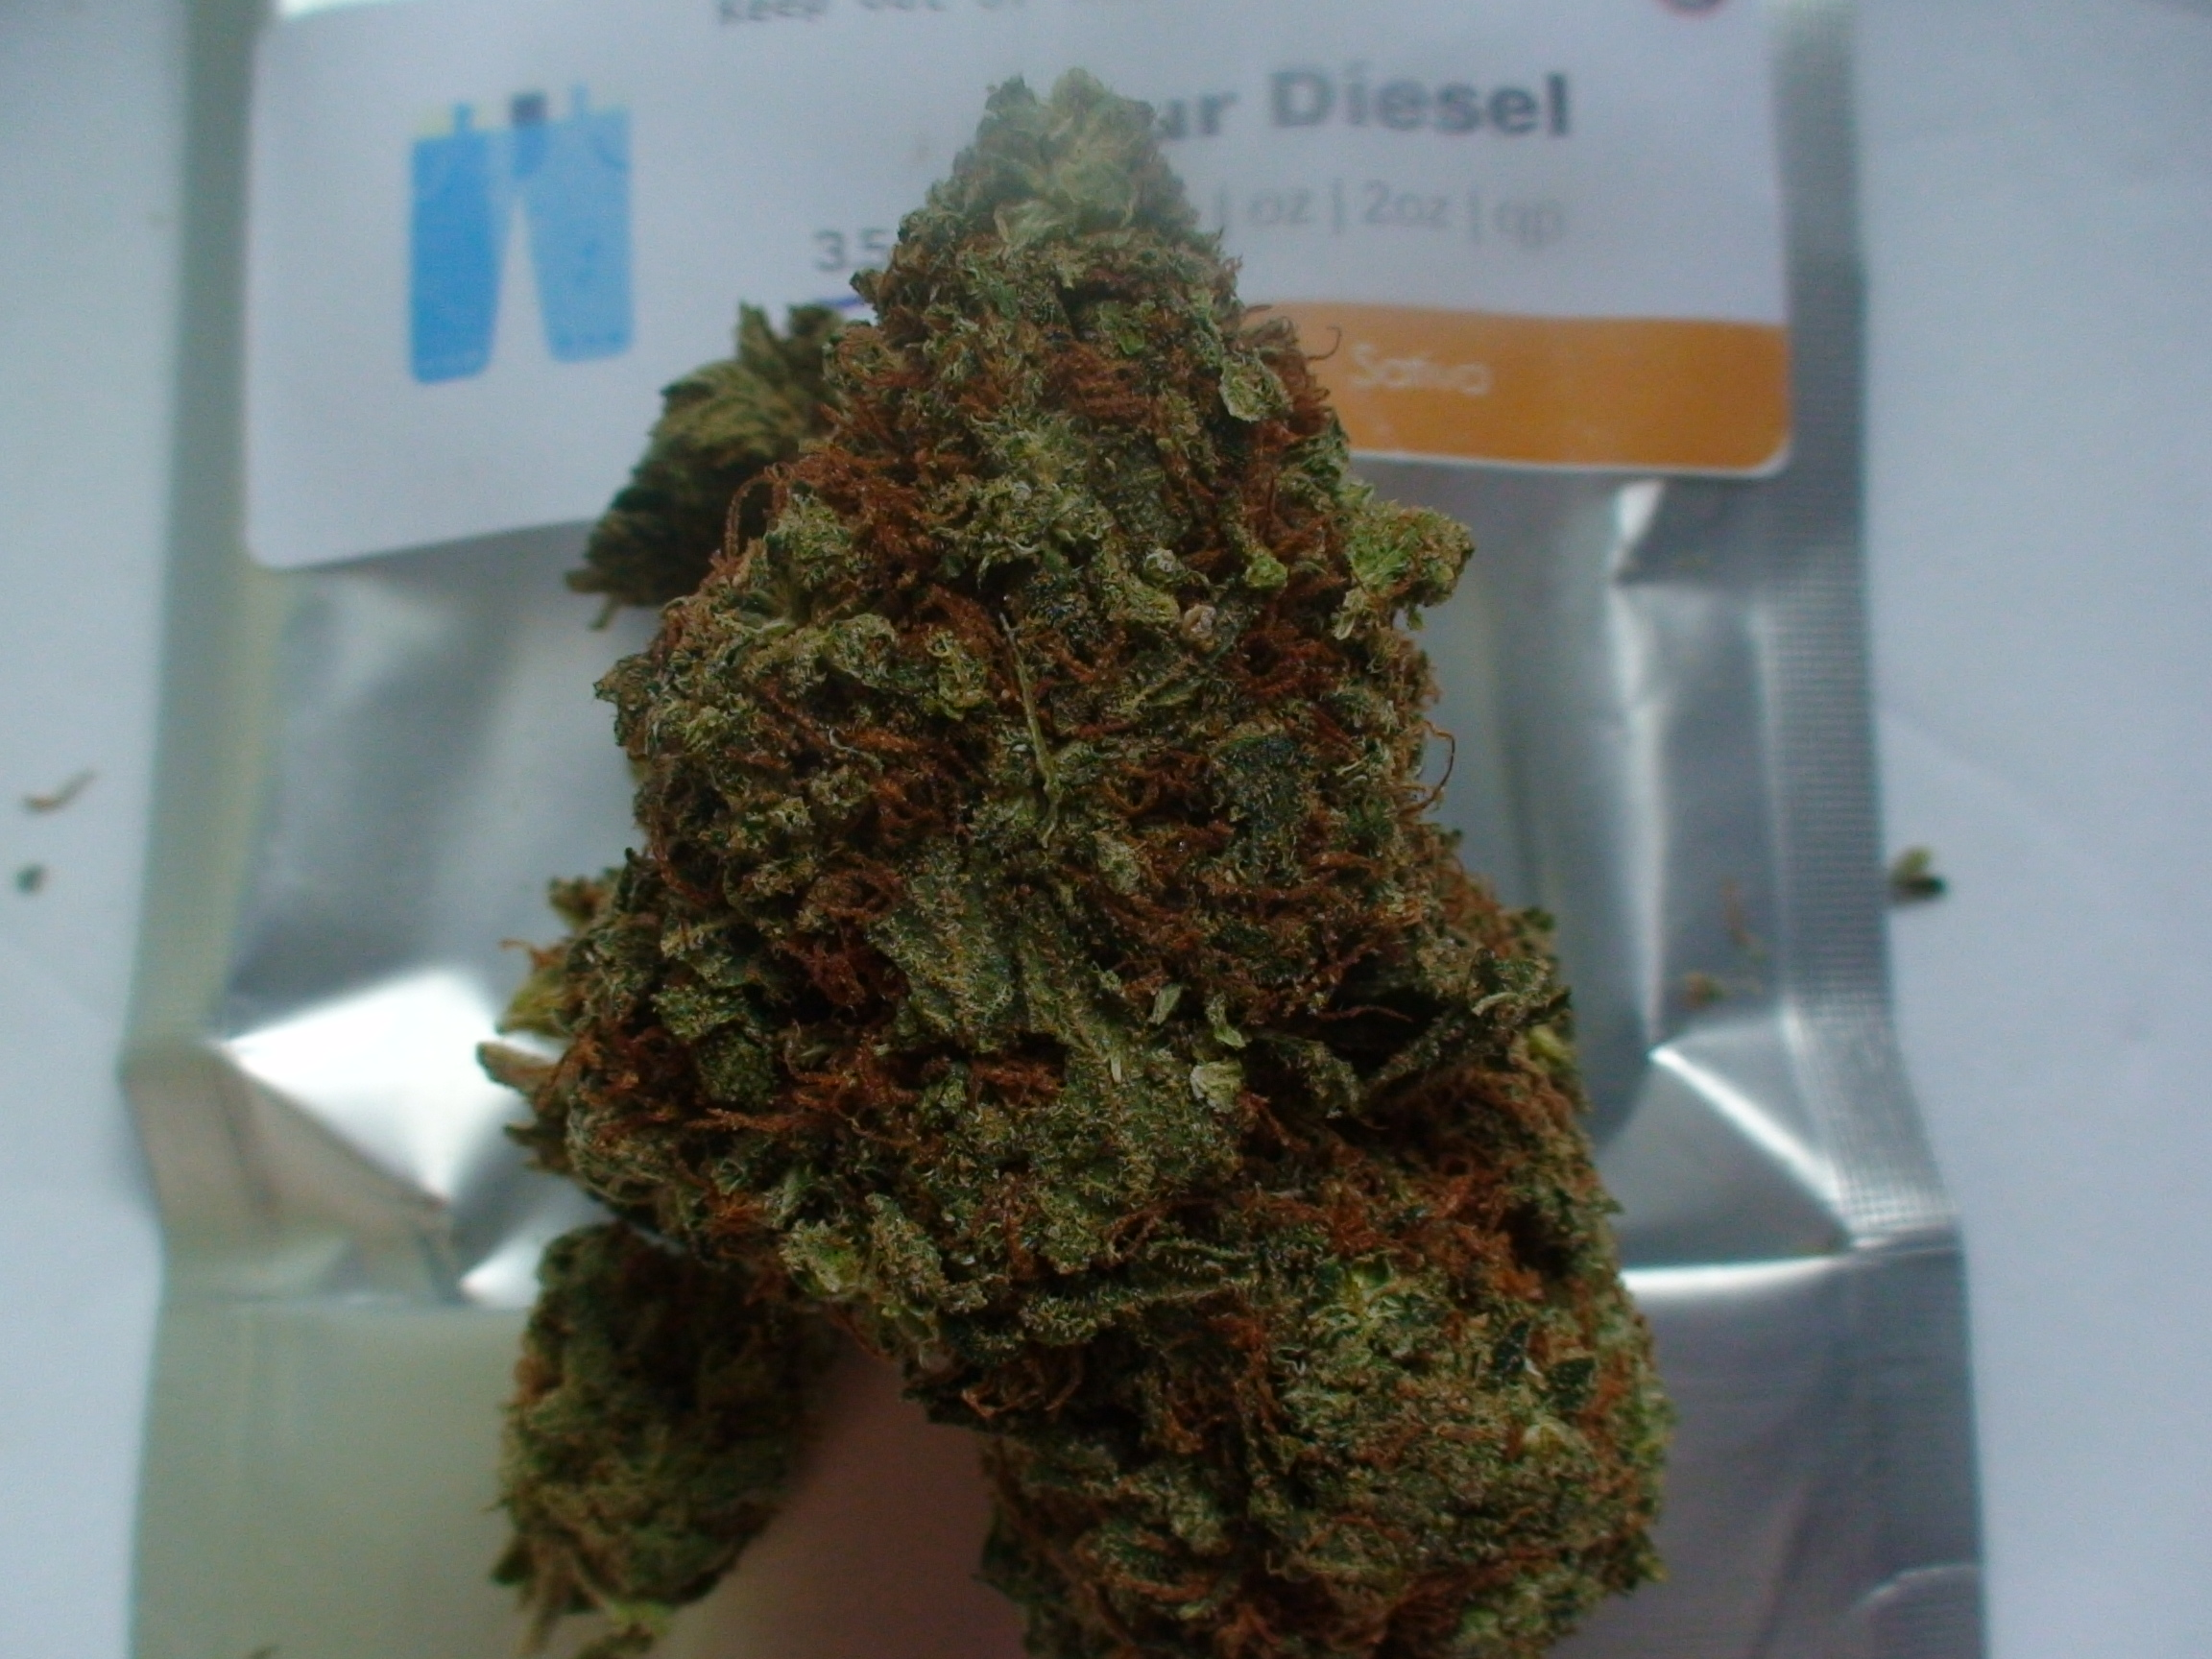 sour disel flower